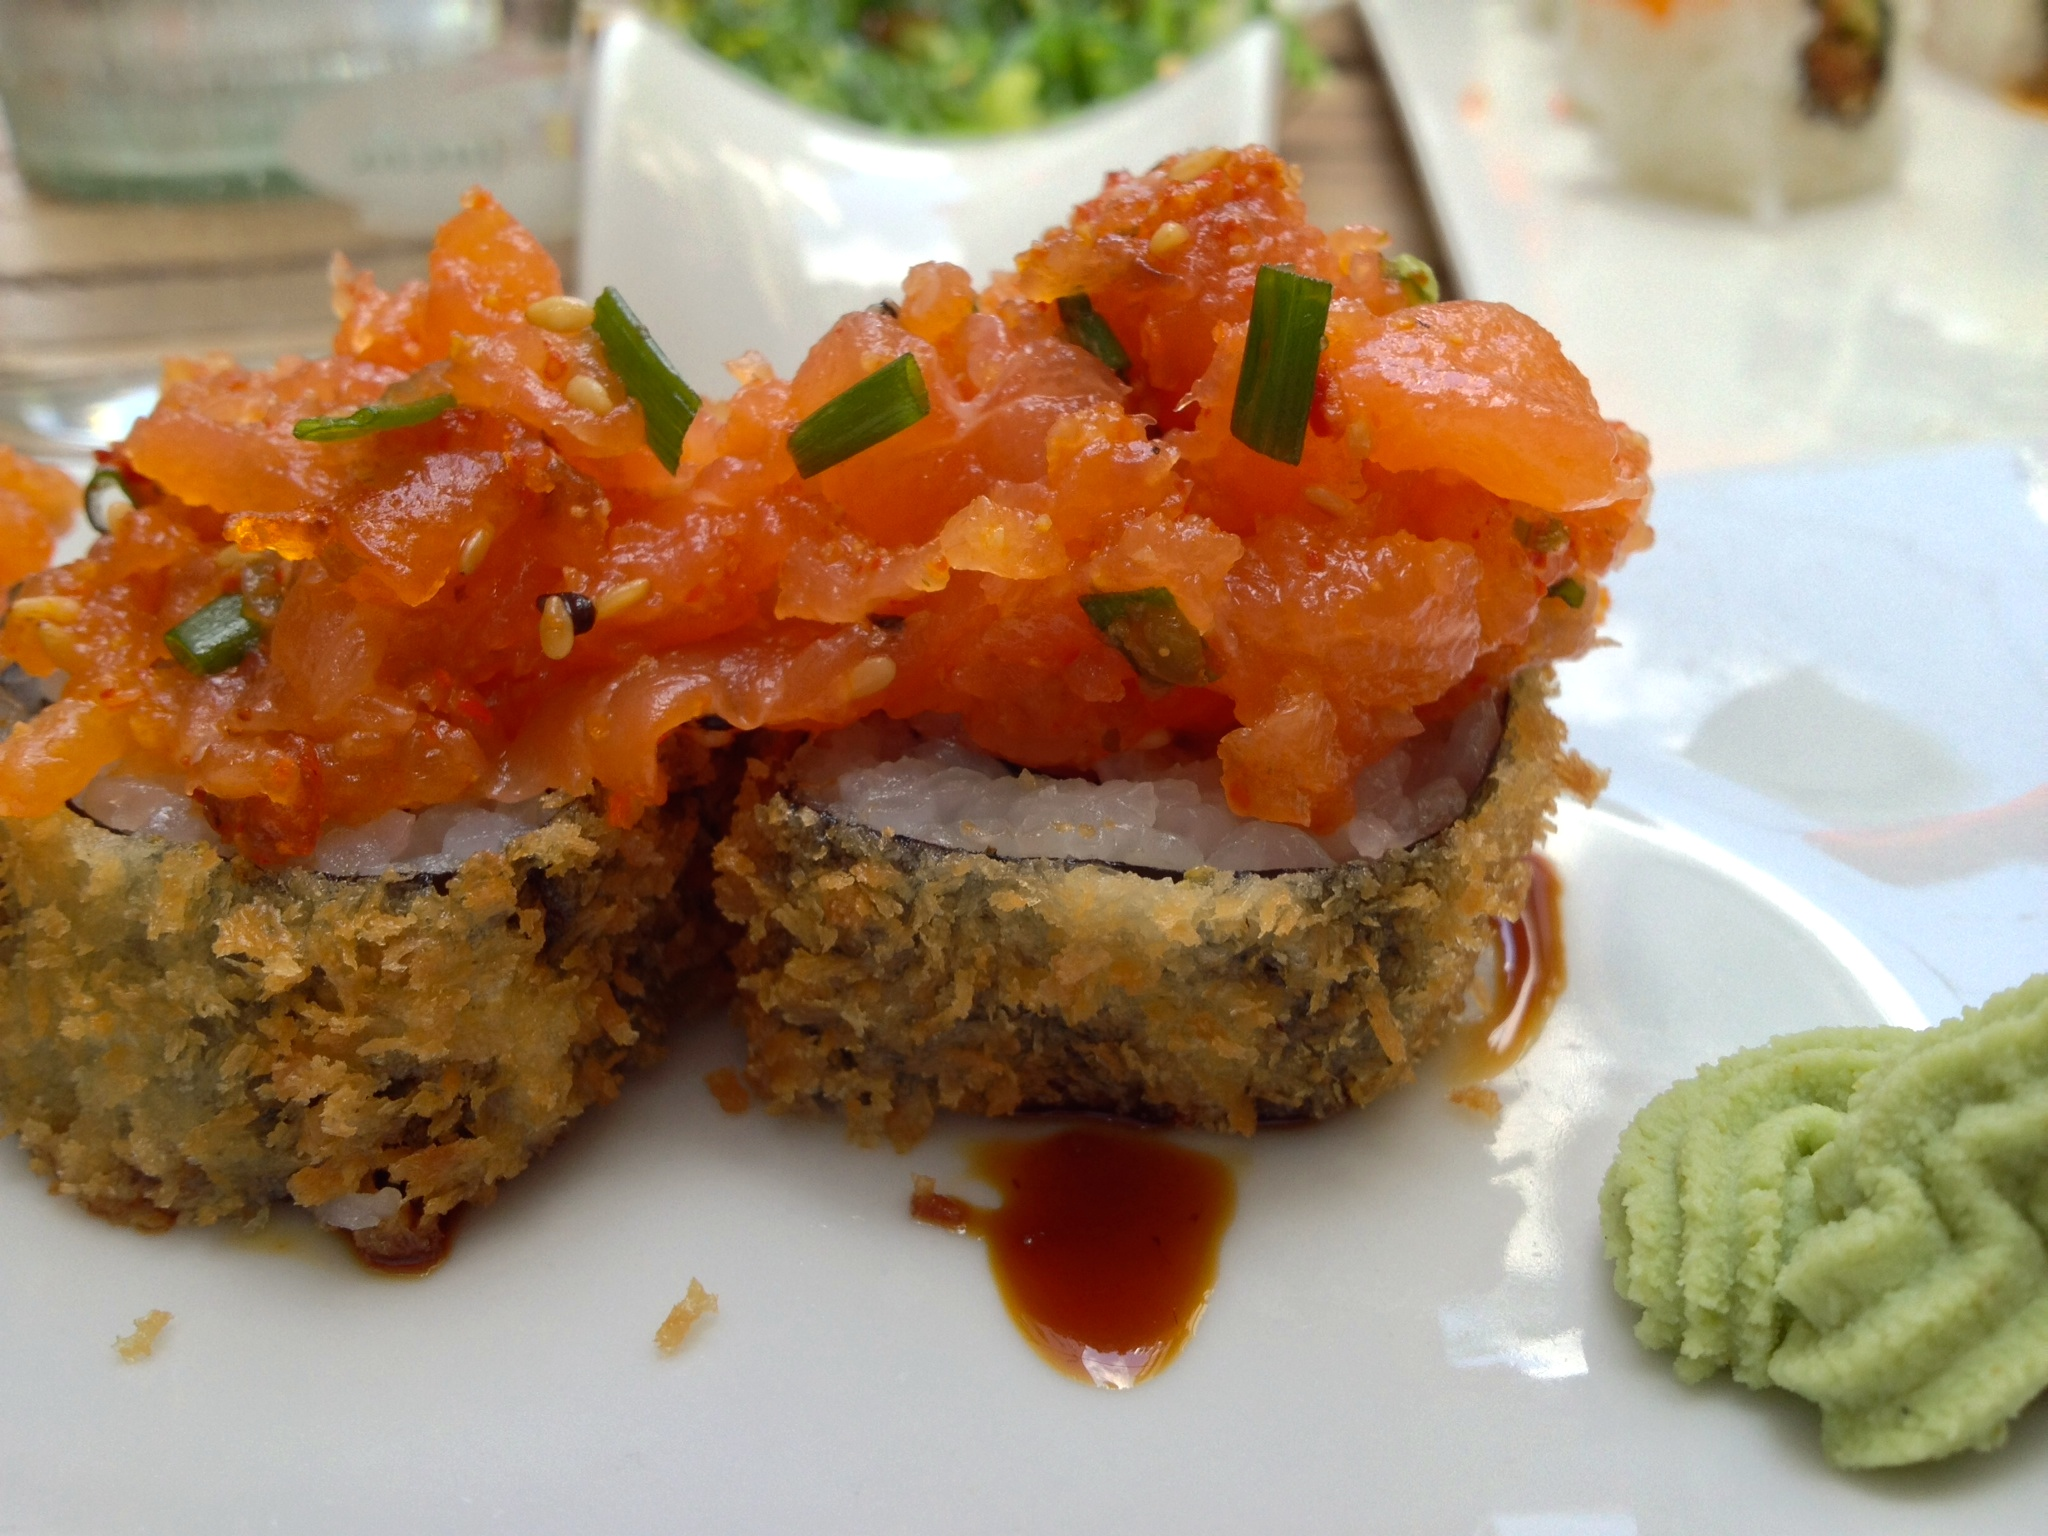 Fried avocado roll topped with spicy salmon